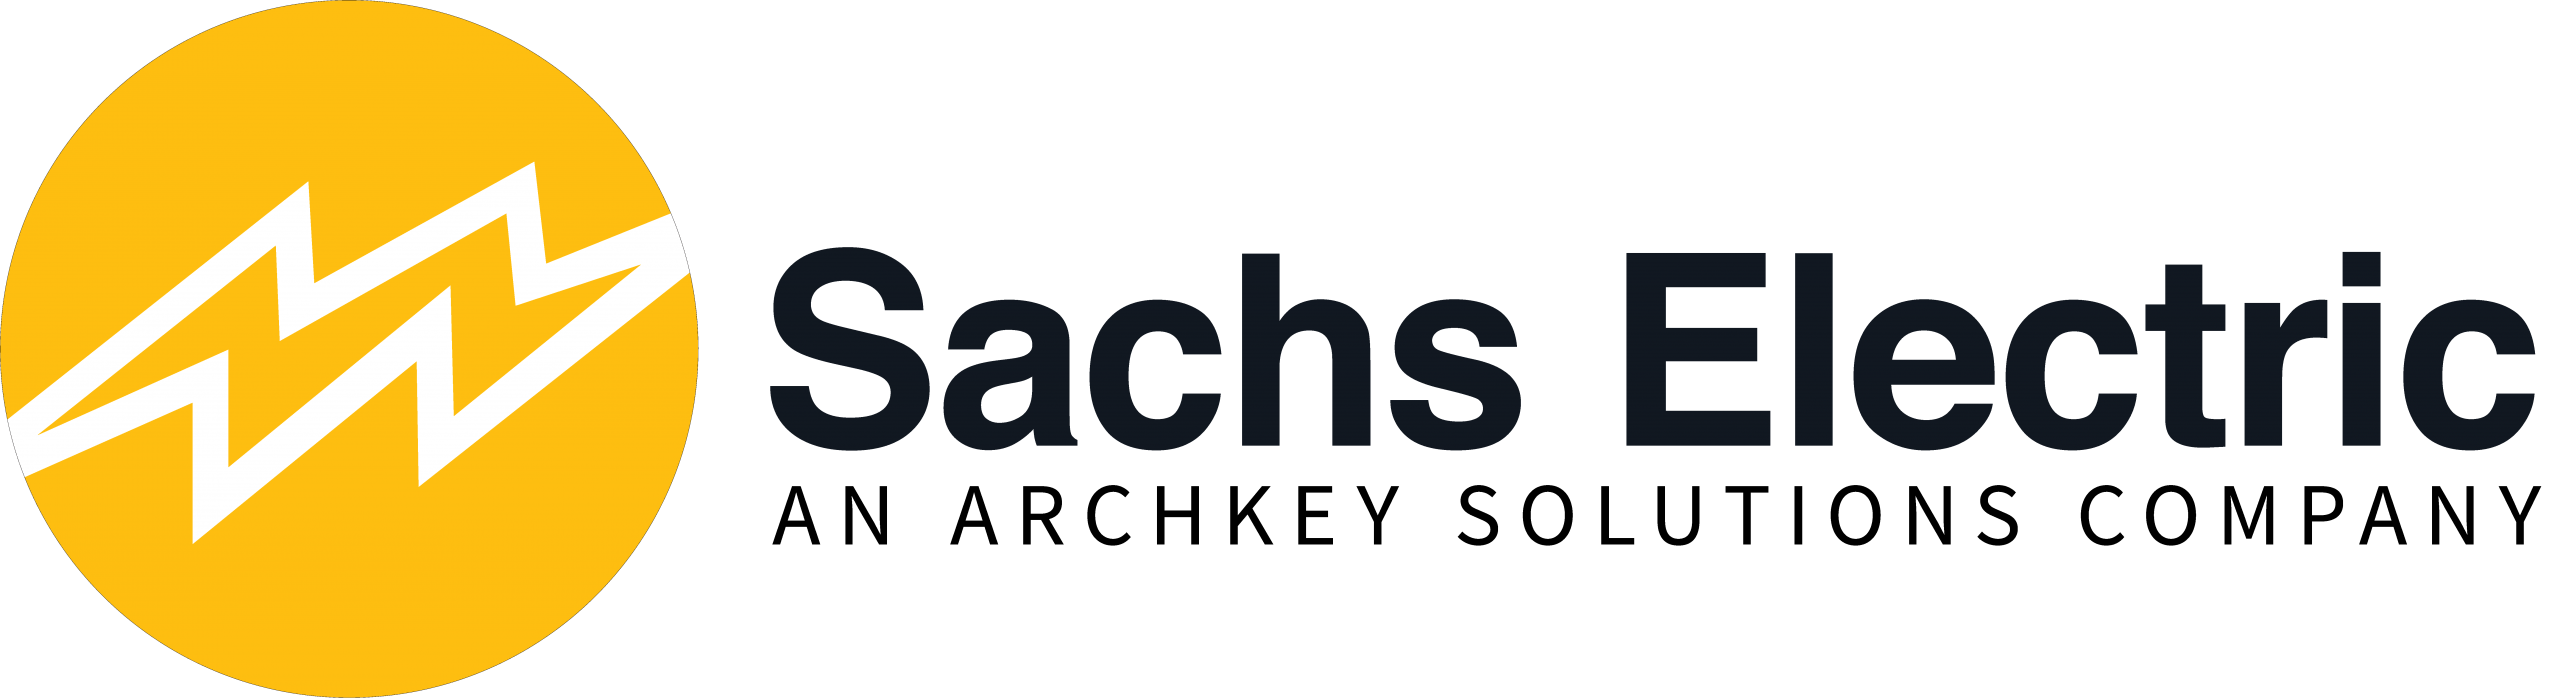 Sachs Electric - An ArchKey Solutions Company